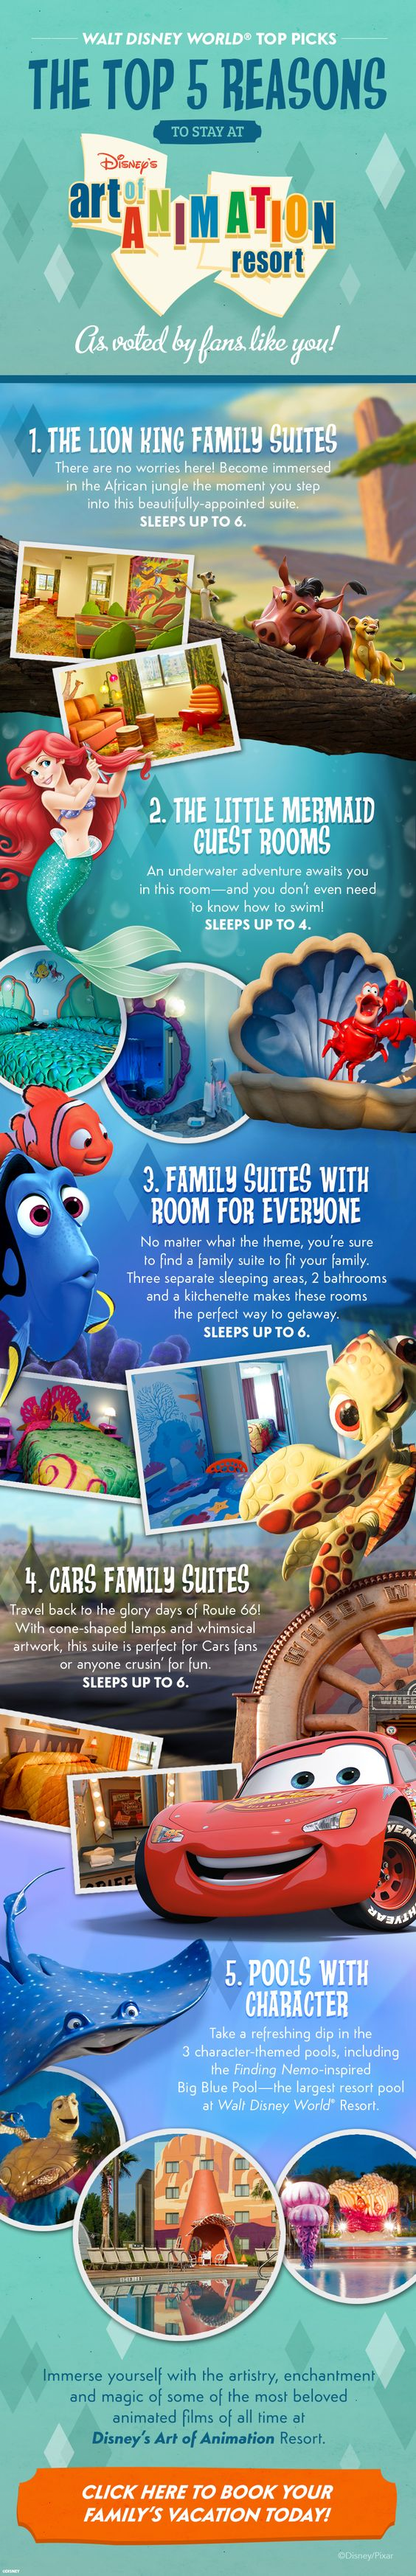 Top 5 Reasons to stay at Disney's Art of Animation Resort! The Lion King, The Little Mermaid, Finding Nemo and Cars!